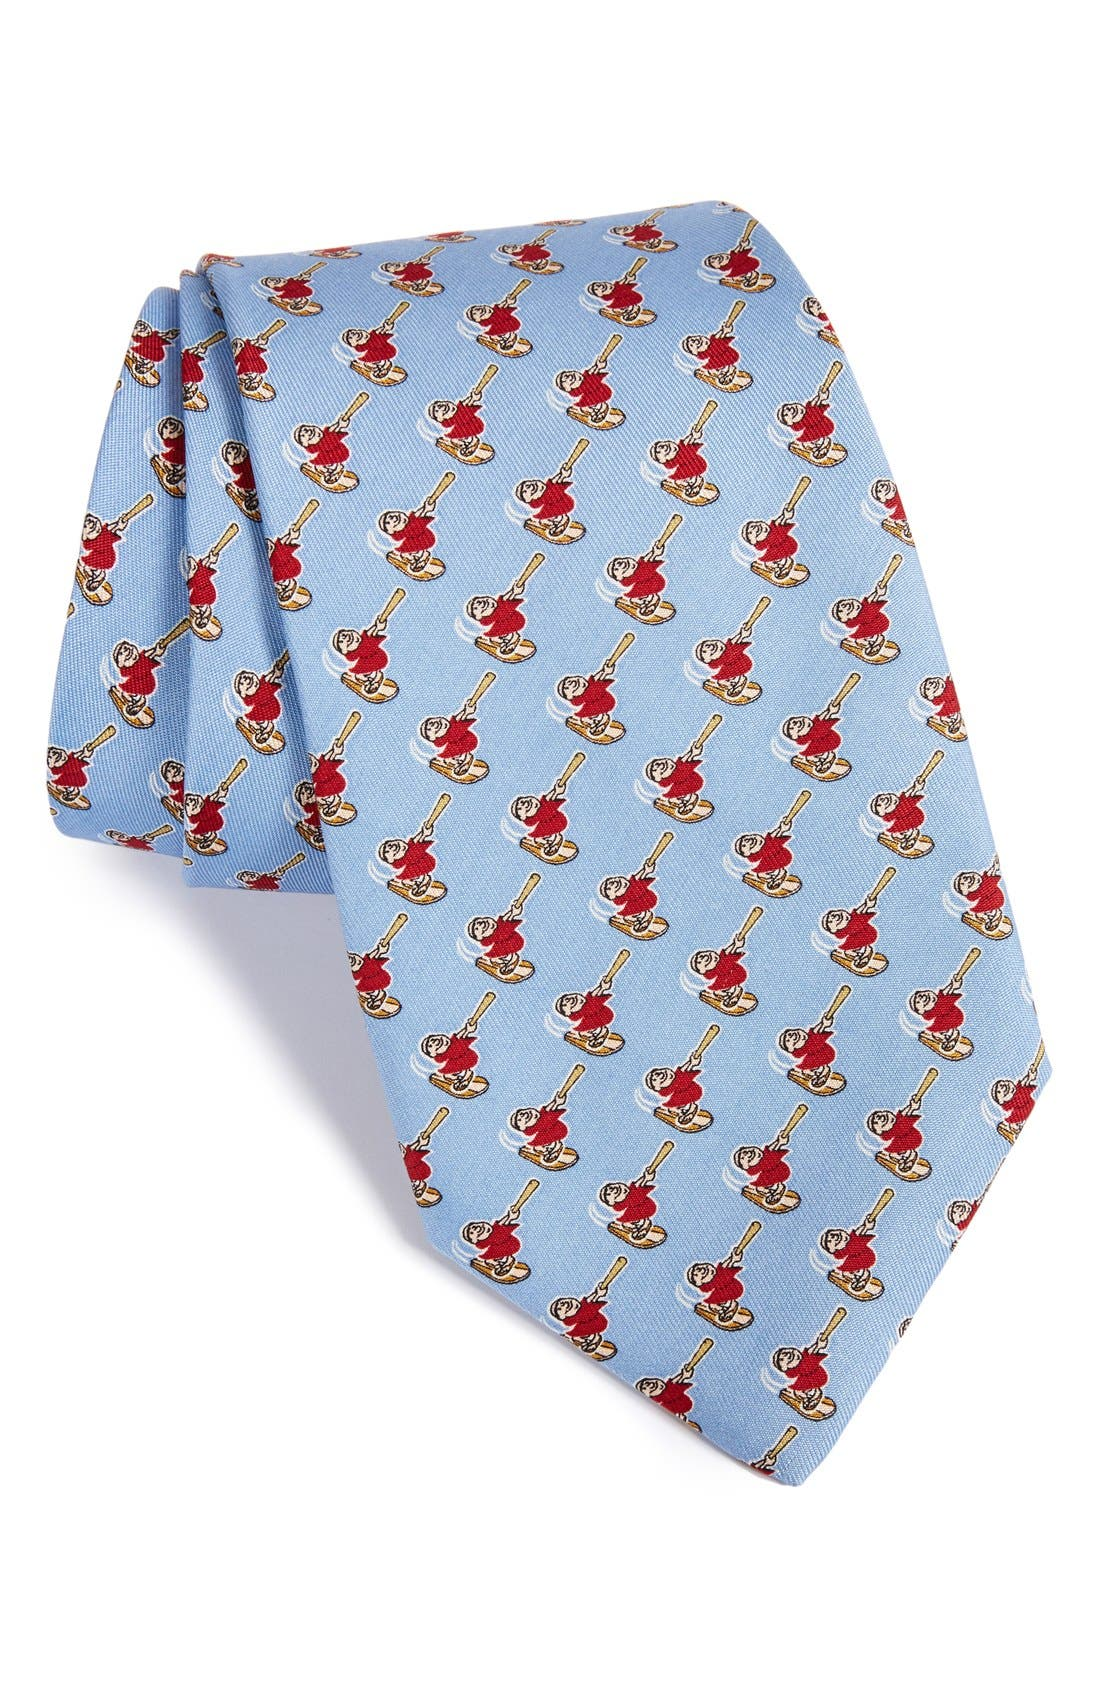 'San Diego Padres - MLB' Print Silk Tie,                             Main thumbnail 1, color,                             Periwinkle